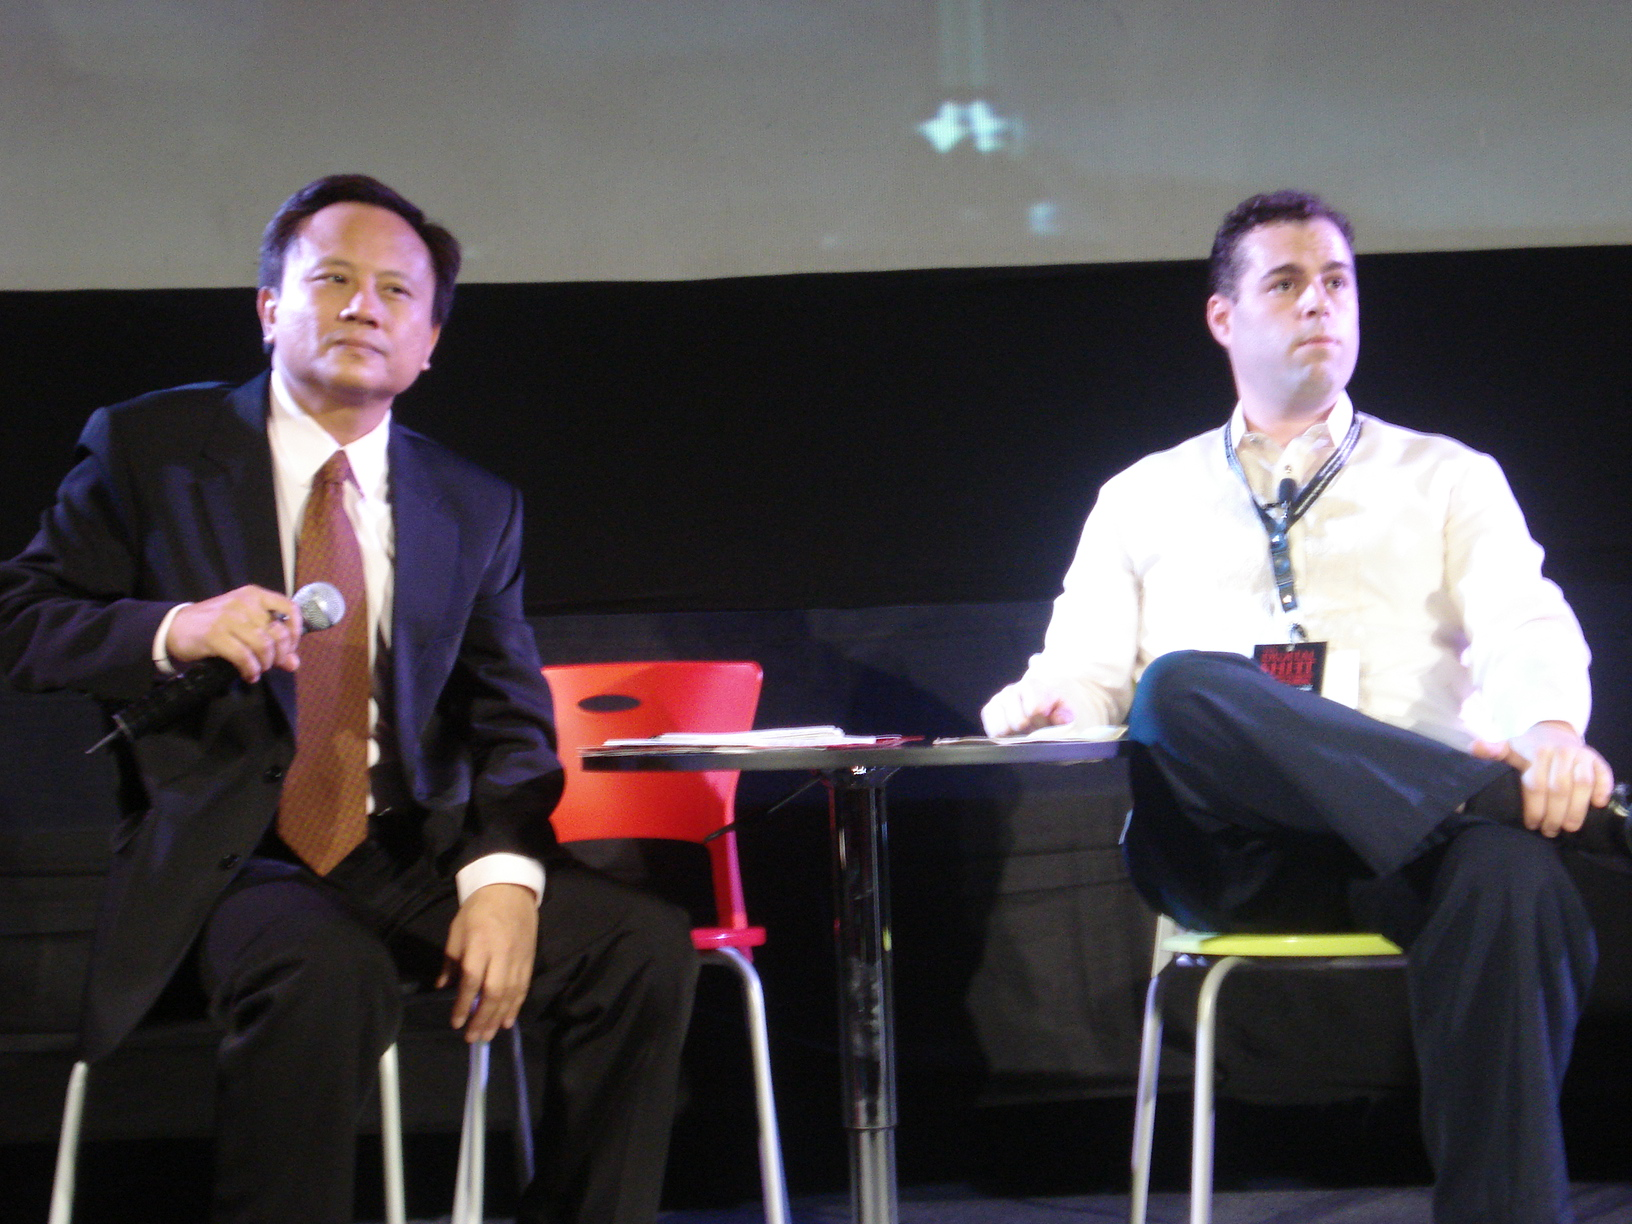 Photo: Moderator/Interviewer Howie Severino with me as we take a question from the audience.